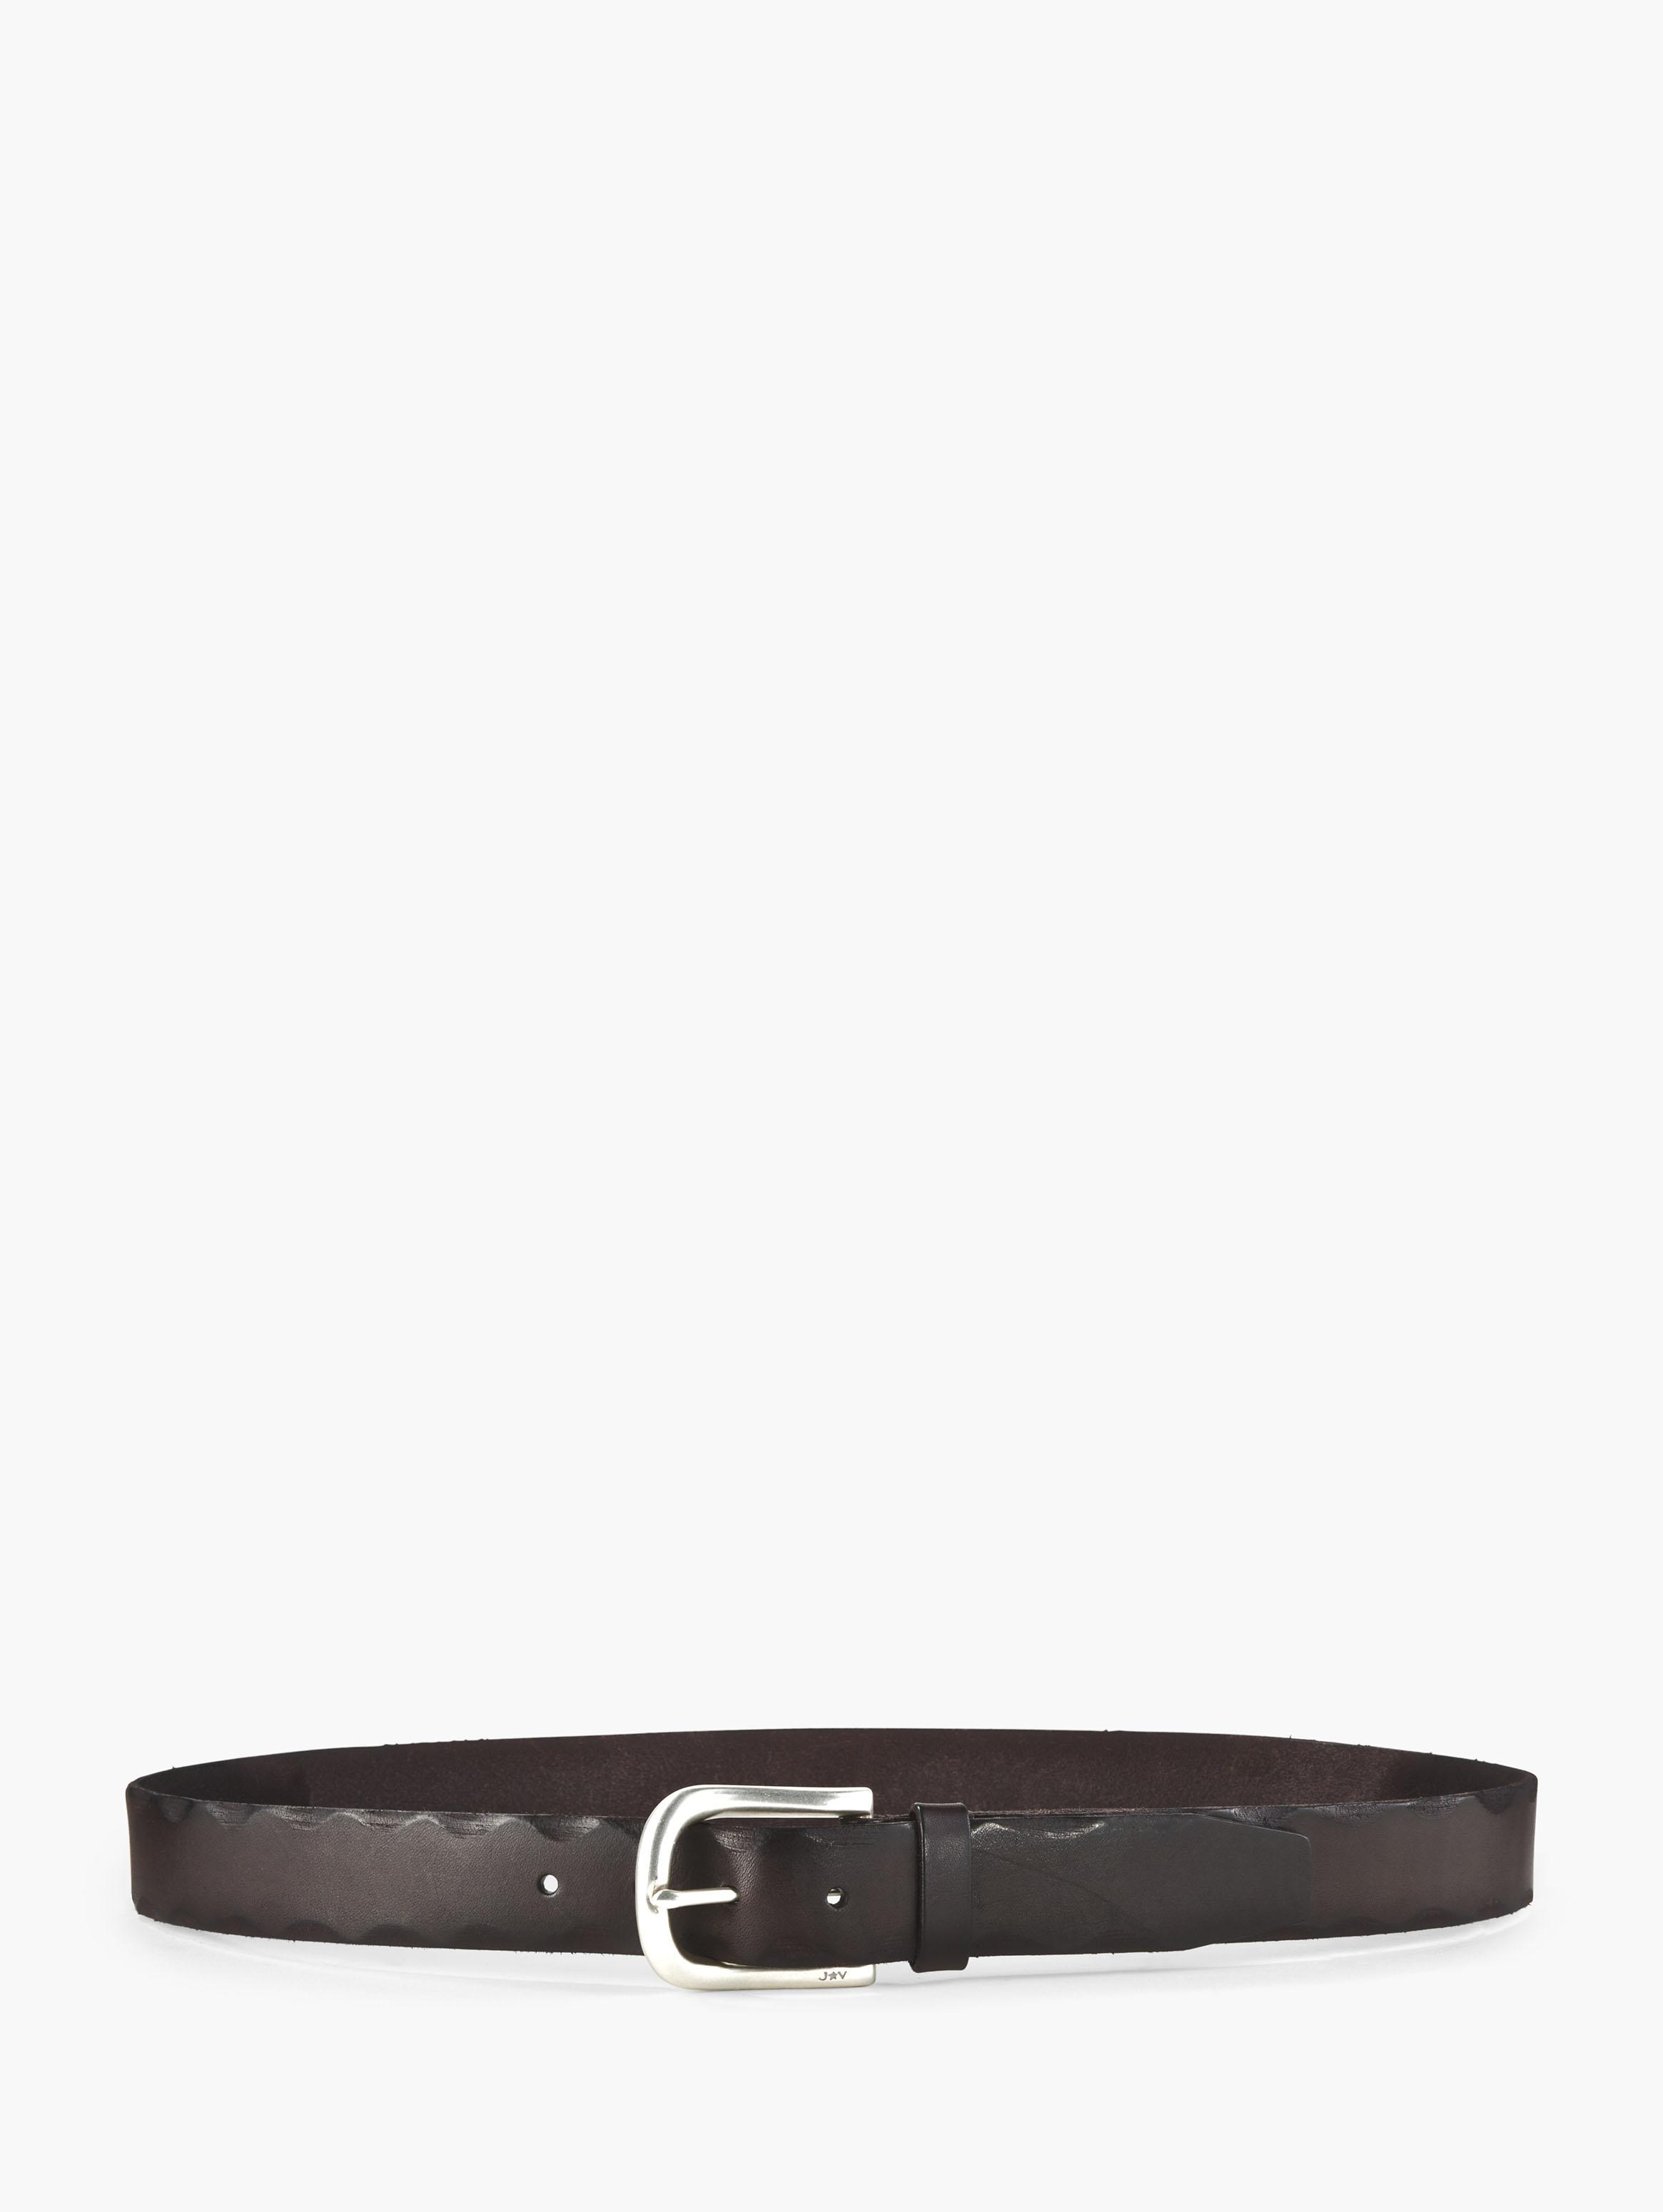 Edged Leather Belt